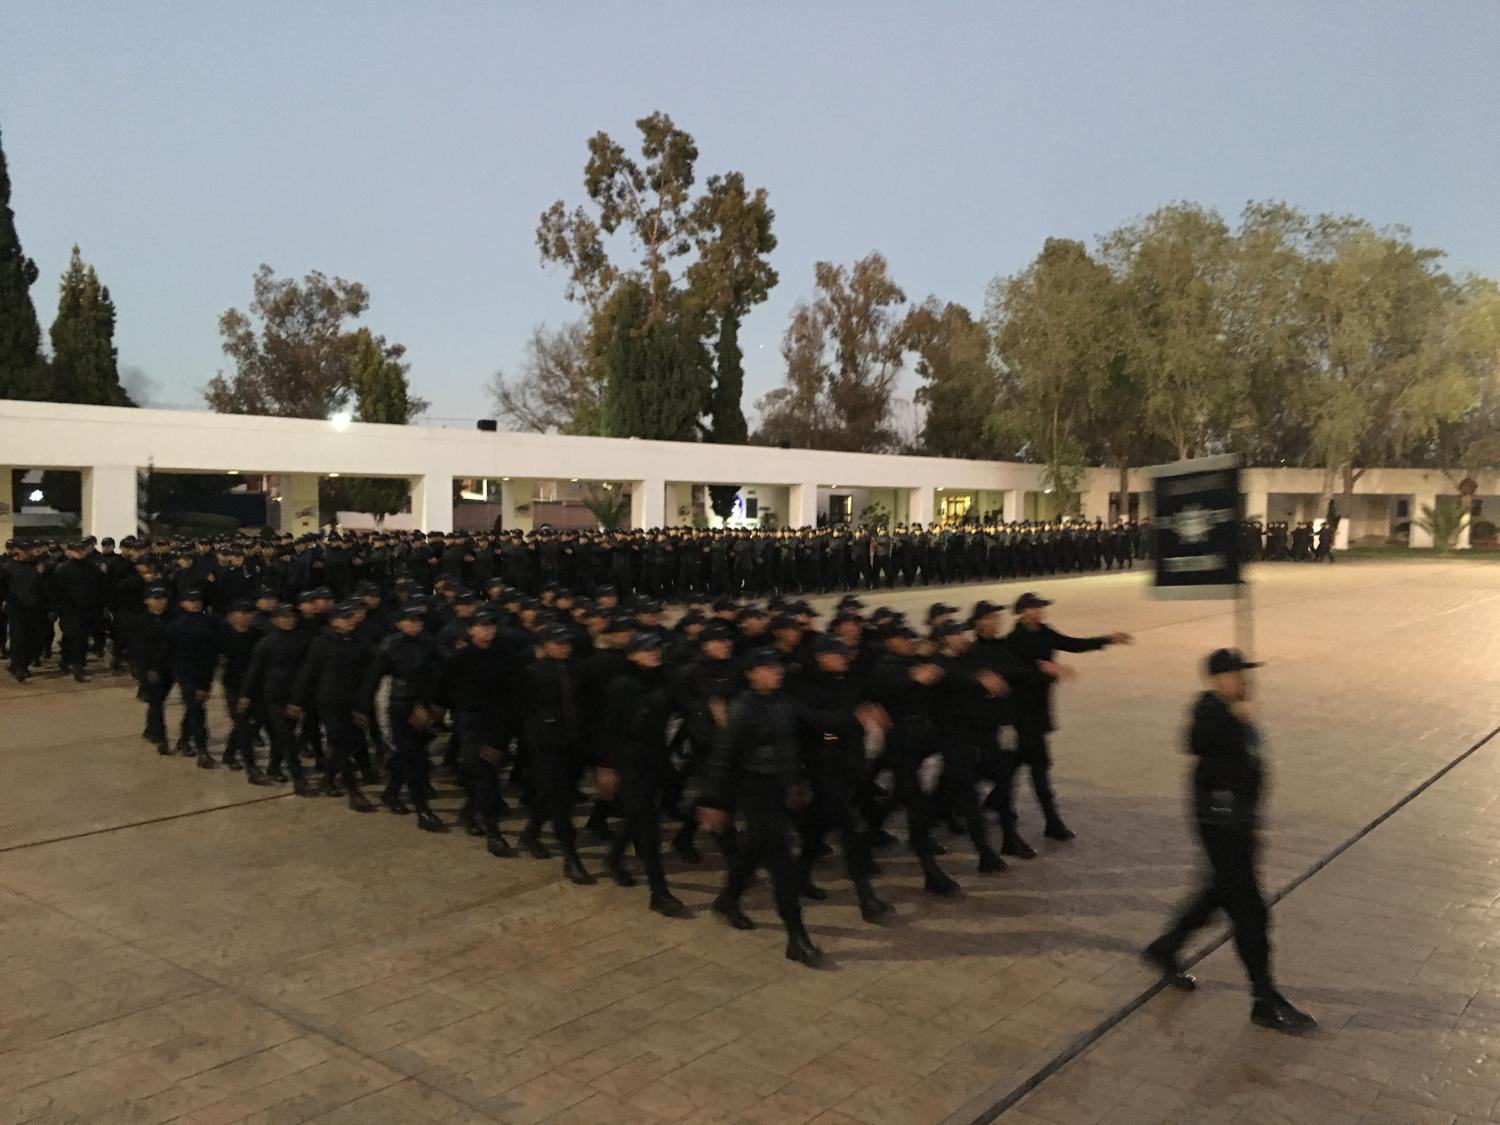 The cadets in Mexico's federal police academy march across an esplanade every morning and evening